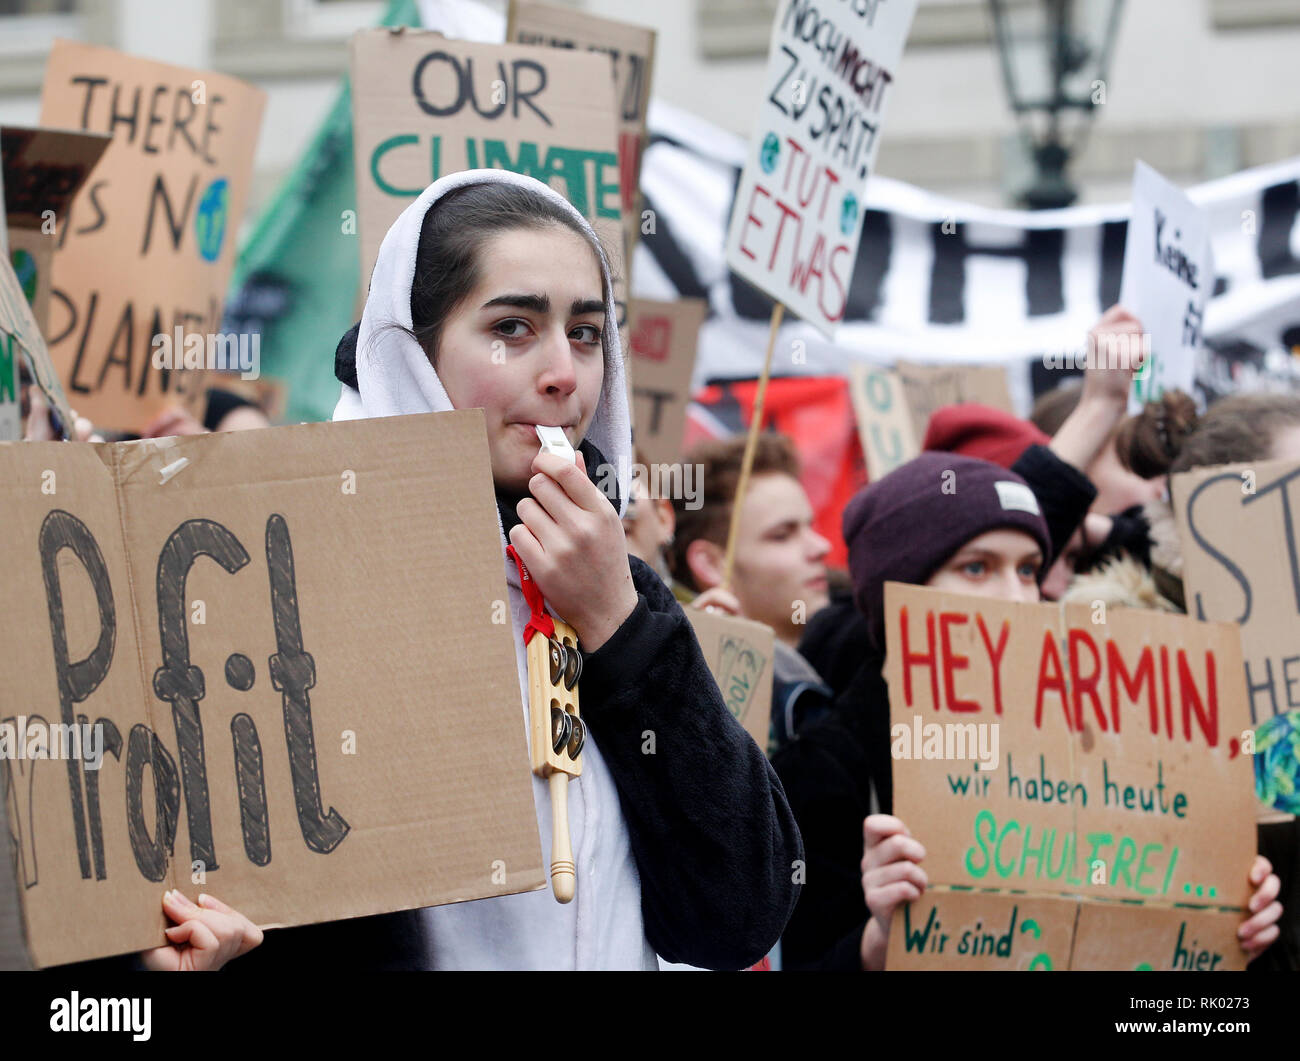 Düsseldorf, Germany. 8th Feb 2019. Students protest loudly during a student demonstration in front of the town hall, also with whistles. The motto of the protest is 'Fridays for Future'. Photo: Roland Weihrauch/dpa Credit: dpa picture alliance/Alamy Live News - Stock Image